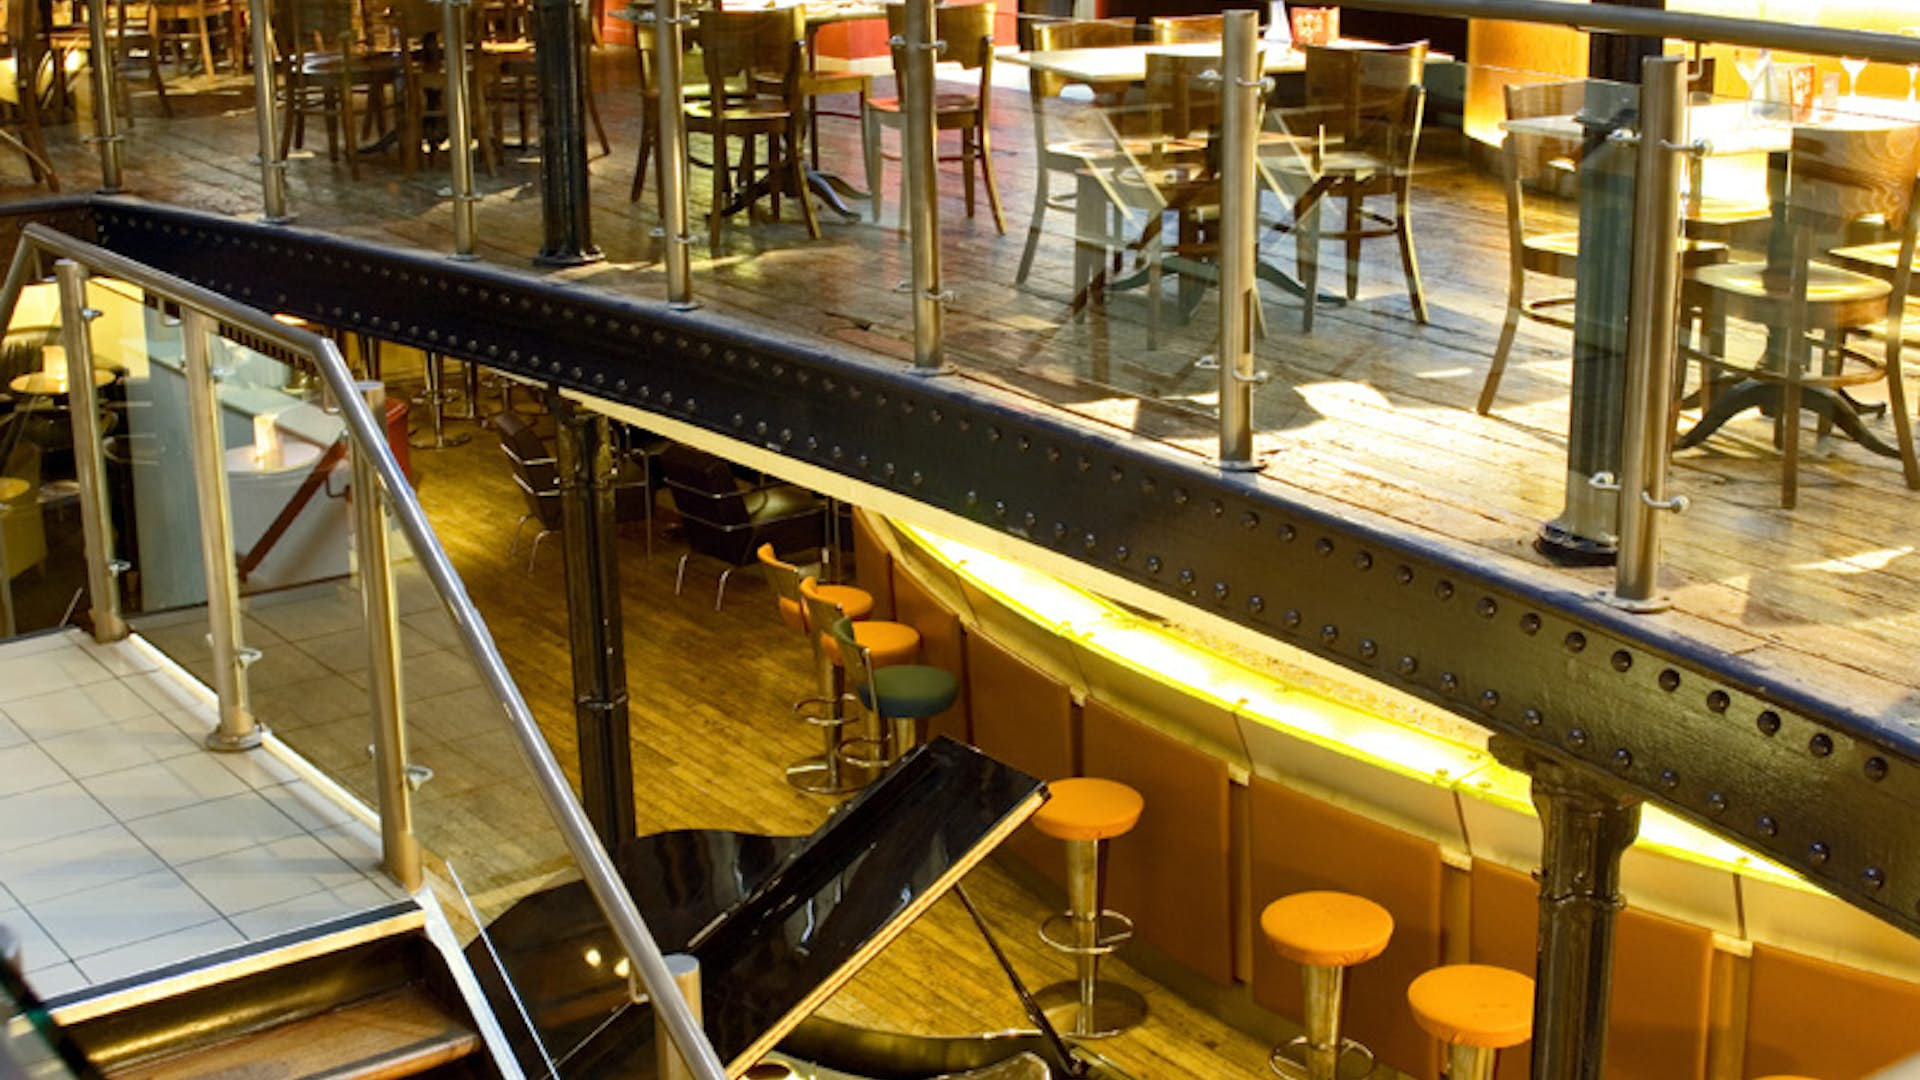 Piano Bar Events Hire Pizzaexpress Wapping